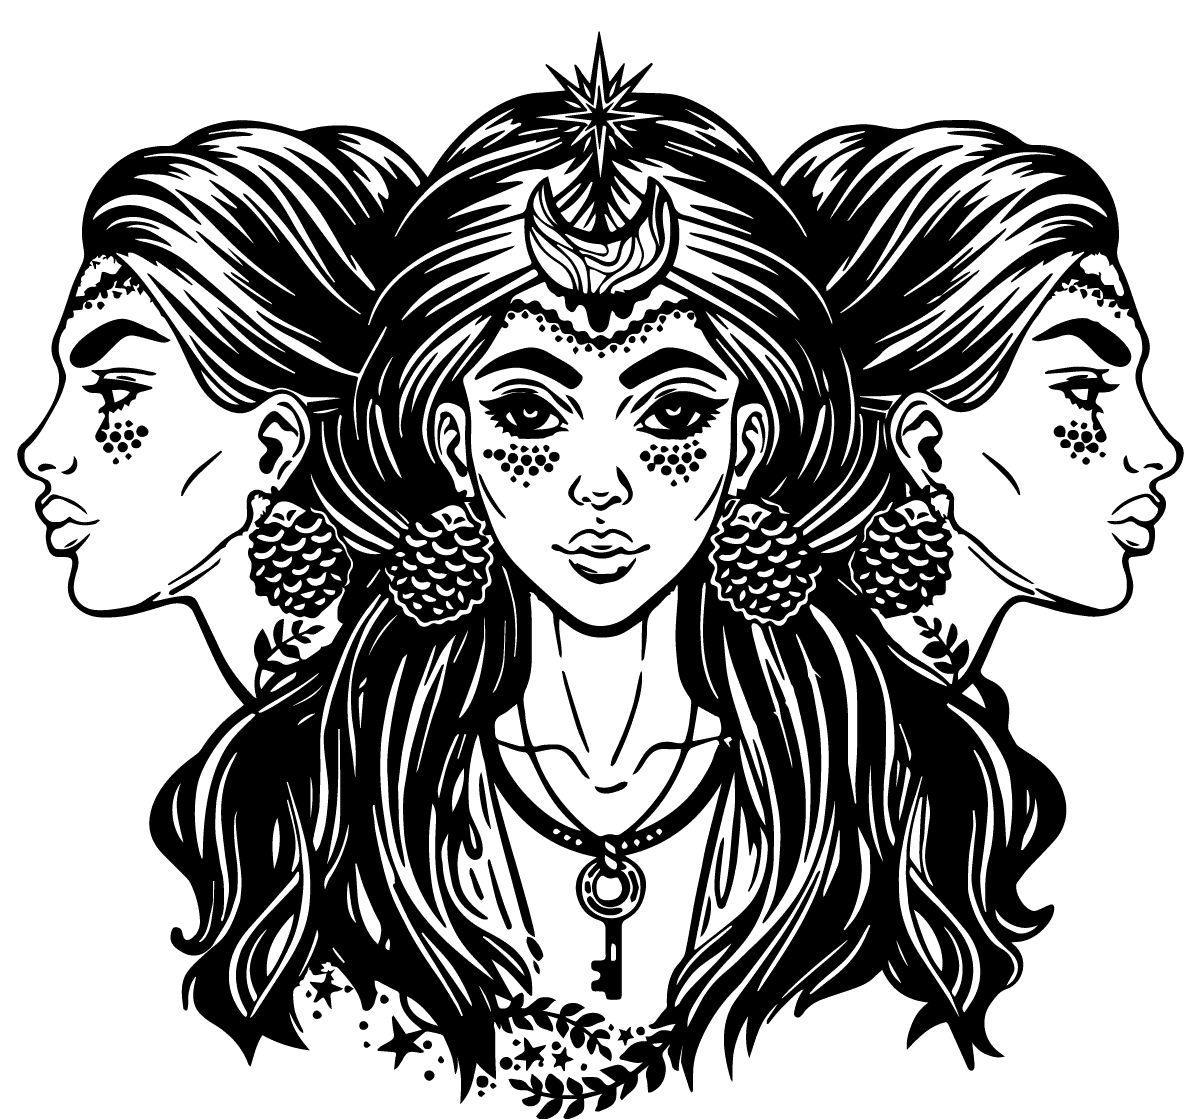 Hecate, Greek Goddess of Magic and Witchcraft - Hecate Myths and Facts